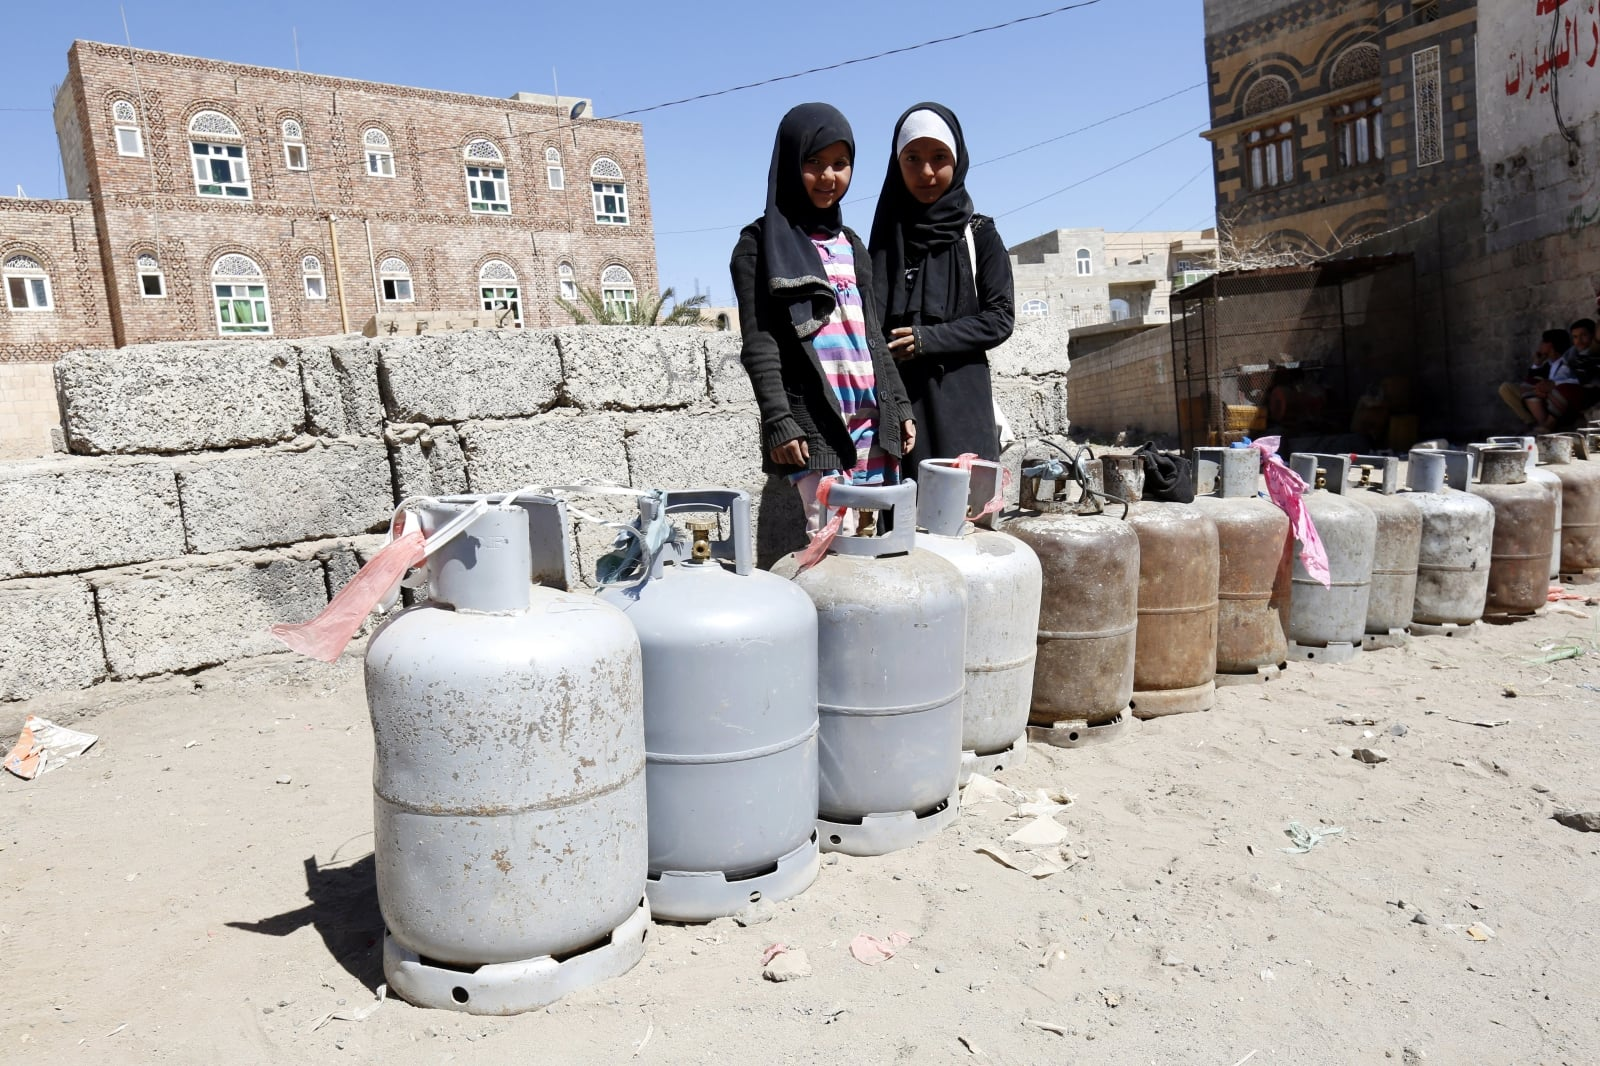 epa06502989 Yemenis wait for gas supplies next to empty cooking gas cylinders, at a gas station amid increasing gas shortage in Sana'a, Yemen, 07 February 2018. According to reports, Yemen continues to experience severe cooking gas shortage since the Saudi-led coalition started a military campaign against the Houthi rebels and their allies in the impoverished Arab state three years ago.  EPA/YAHYA ARHAB Dostawca: PAP/EPA.